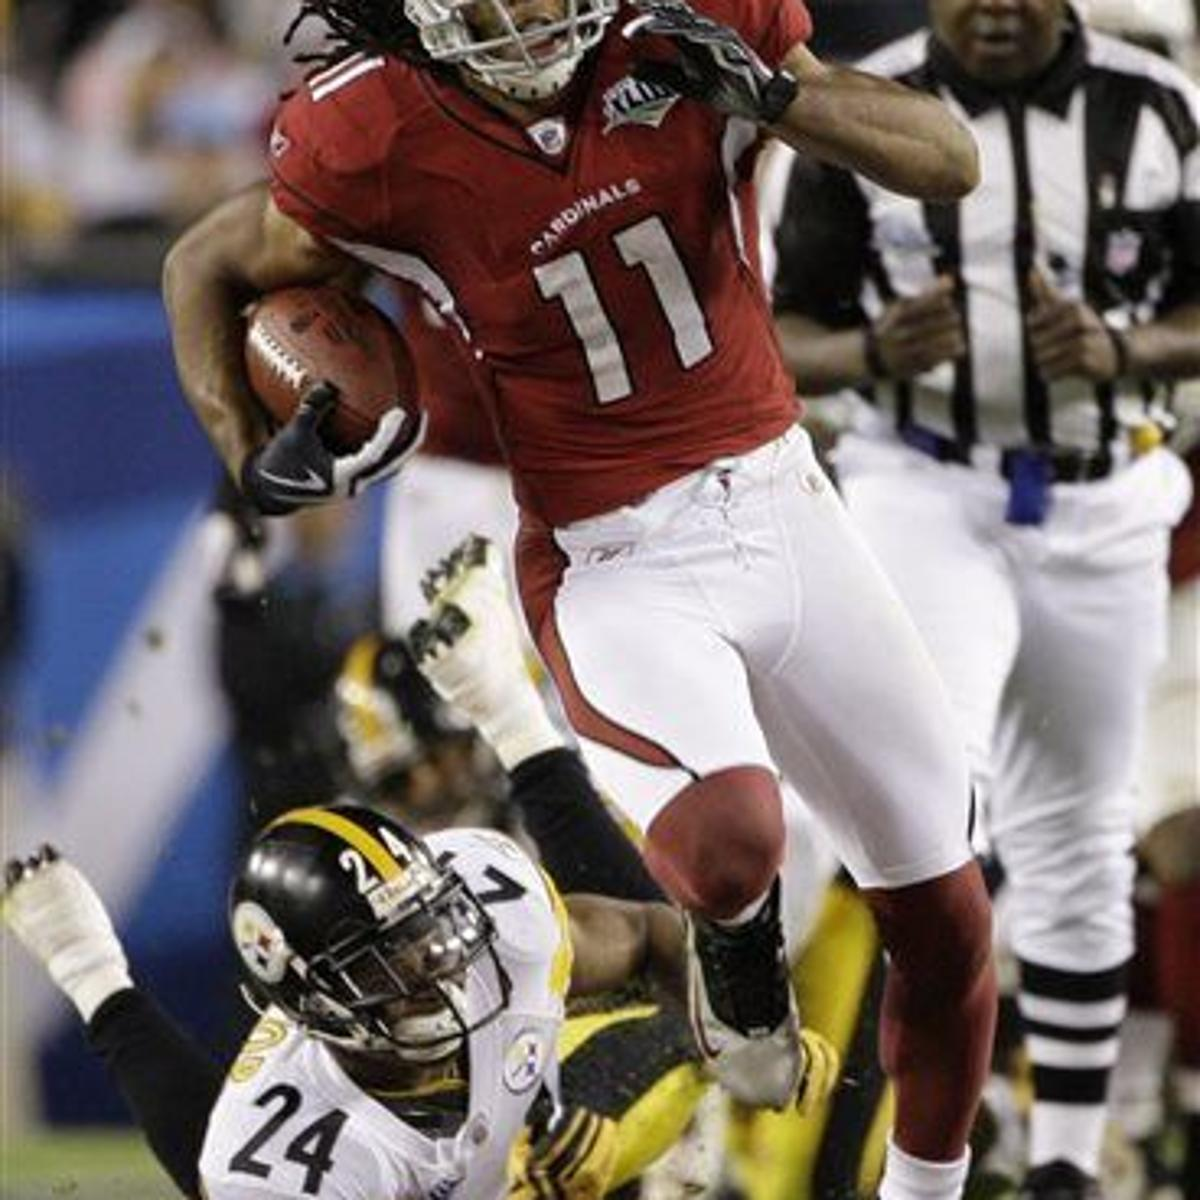 745d2008 Packers: 7 years after Super Bowl heartbreak, Larry Fitzgerald ready ...